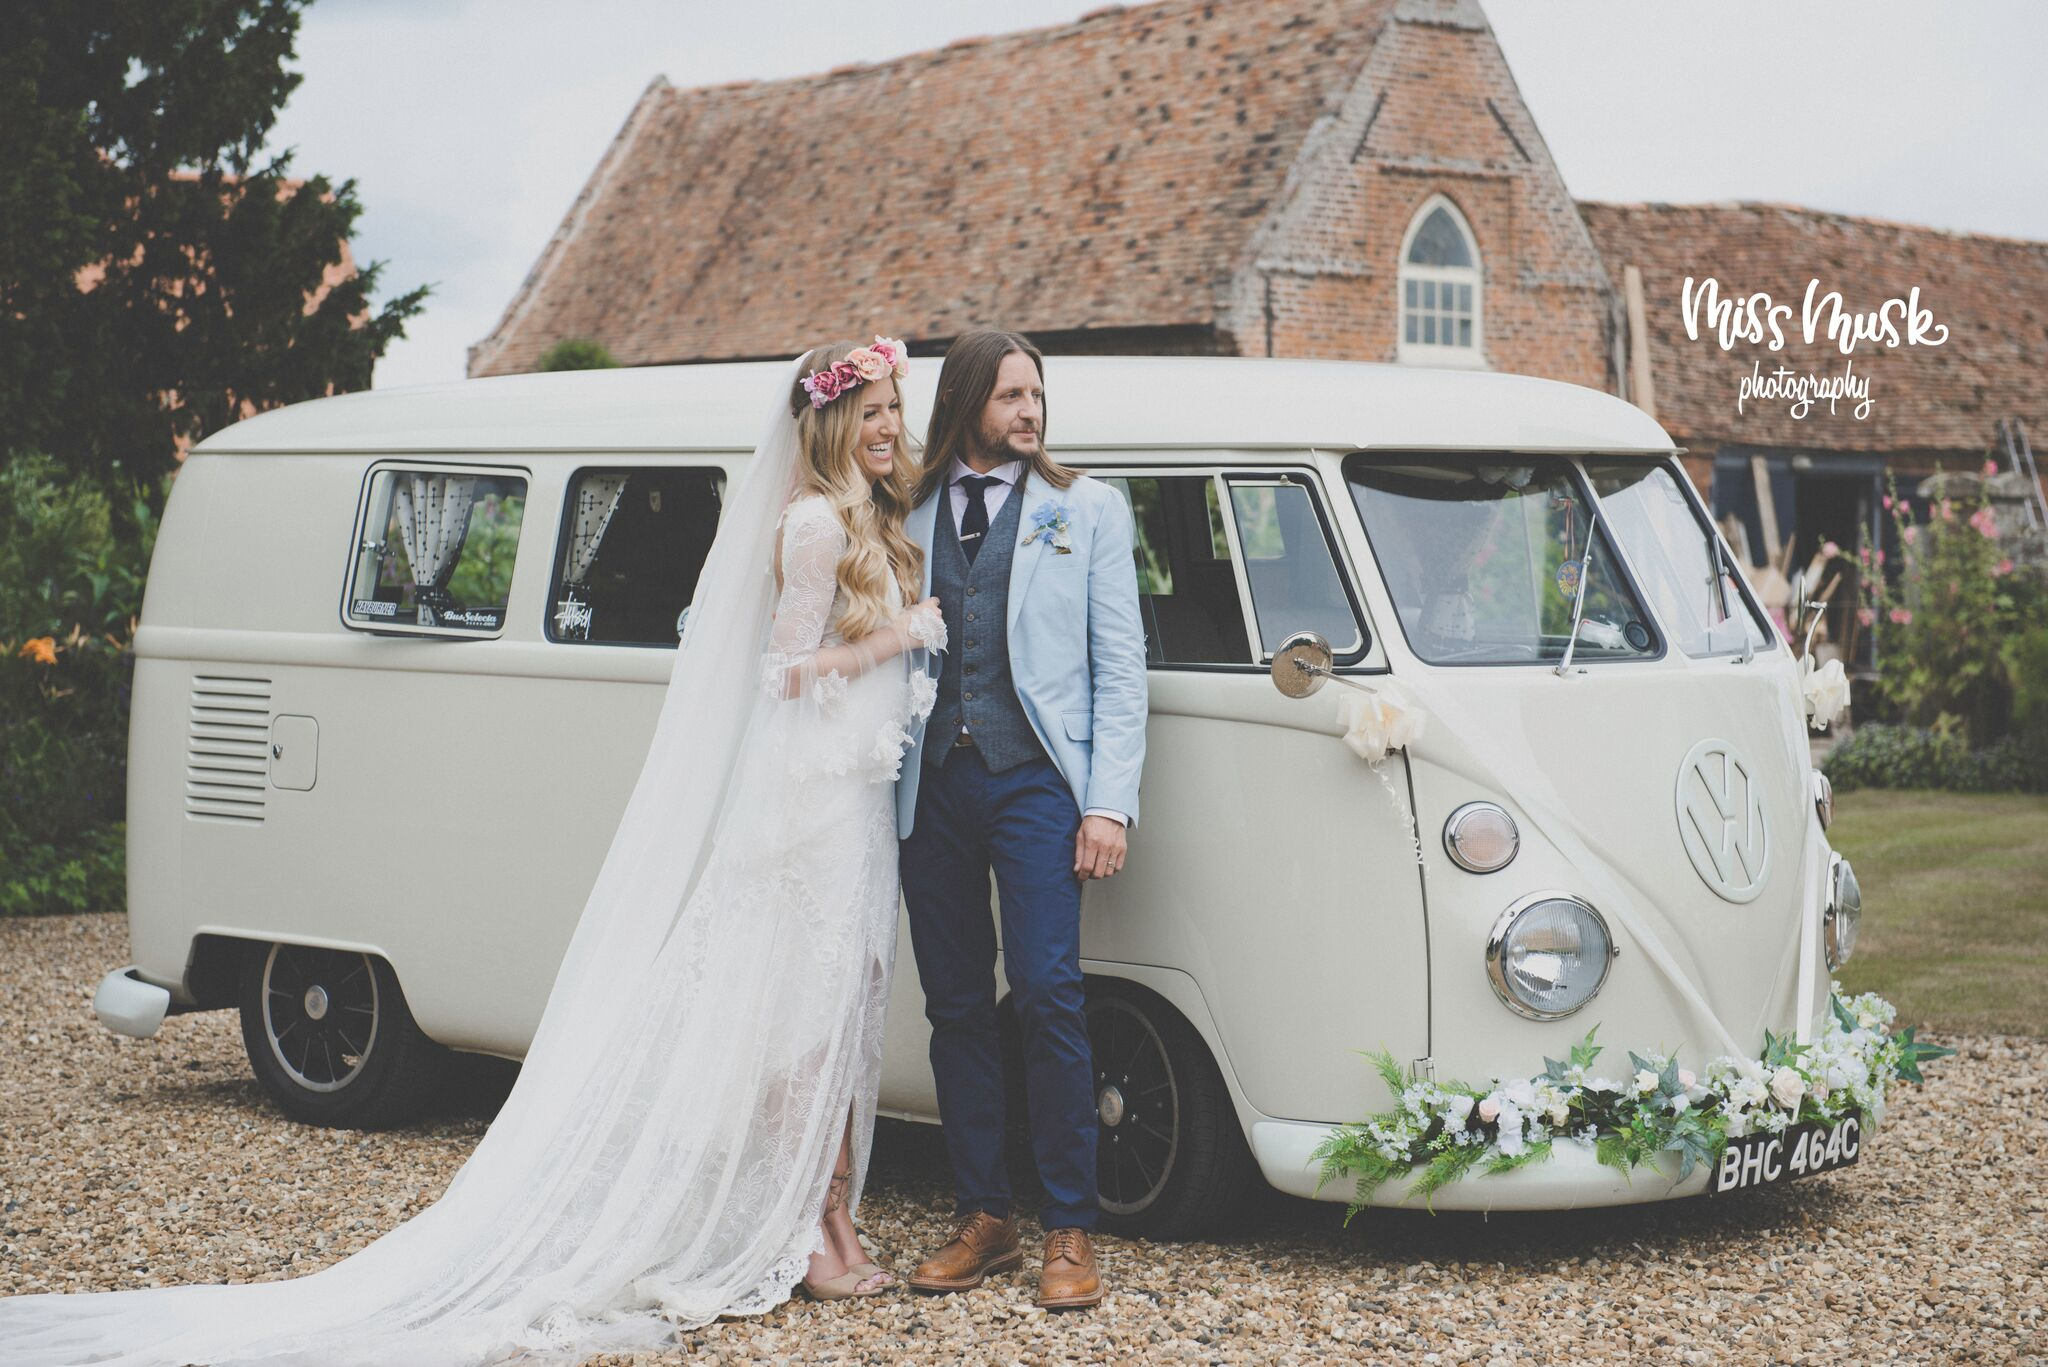 Wedding Car Hire AND Photo Booth - From £890, please enquire.